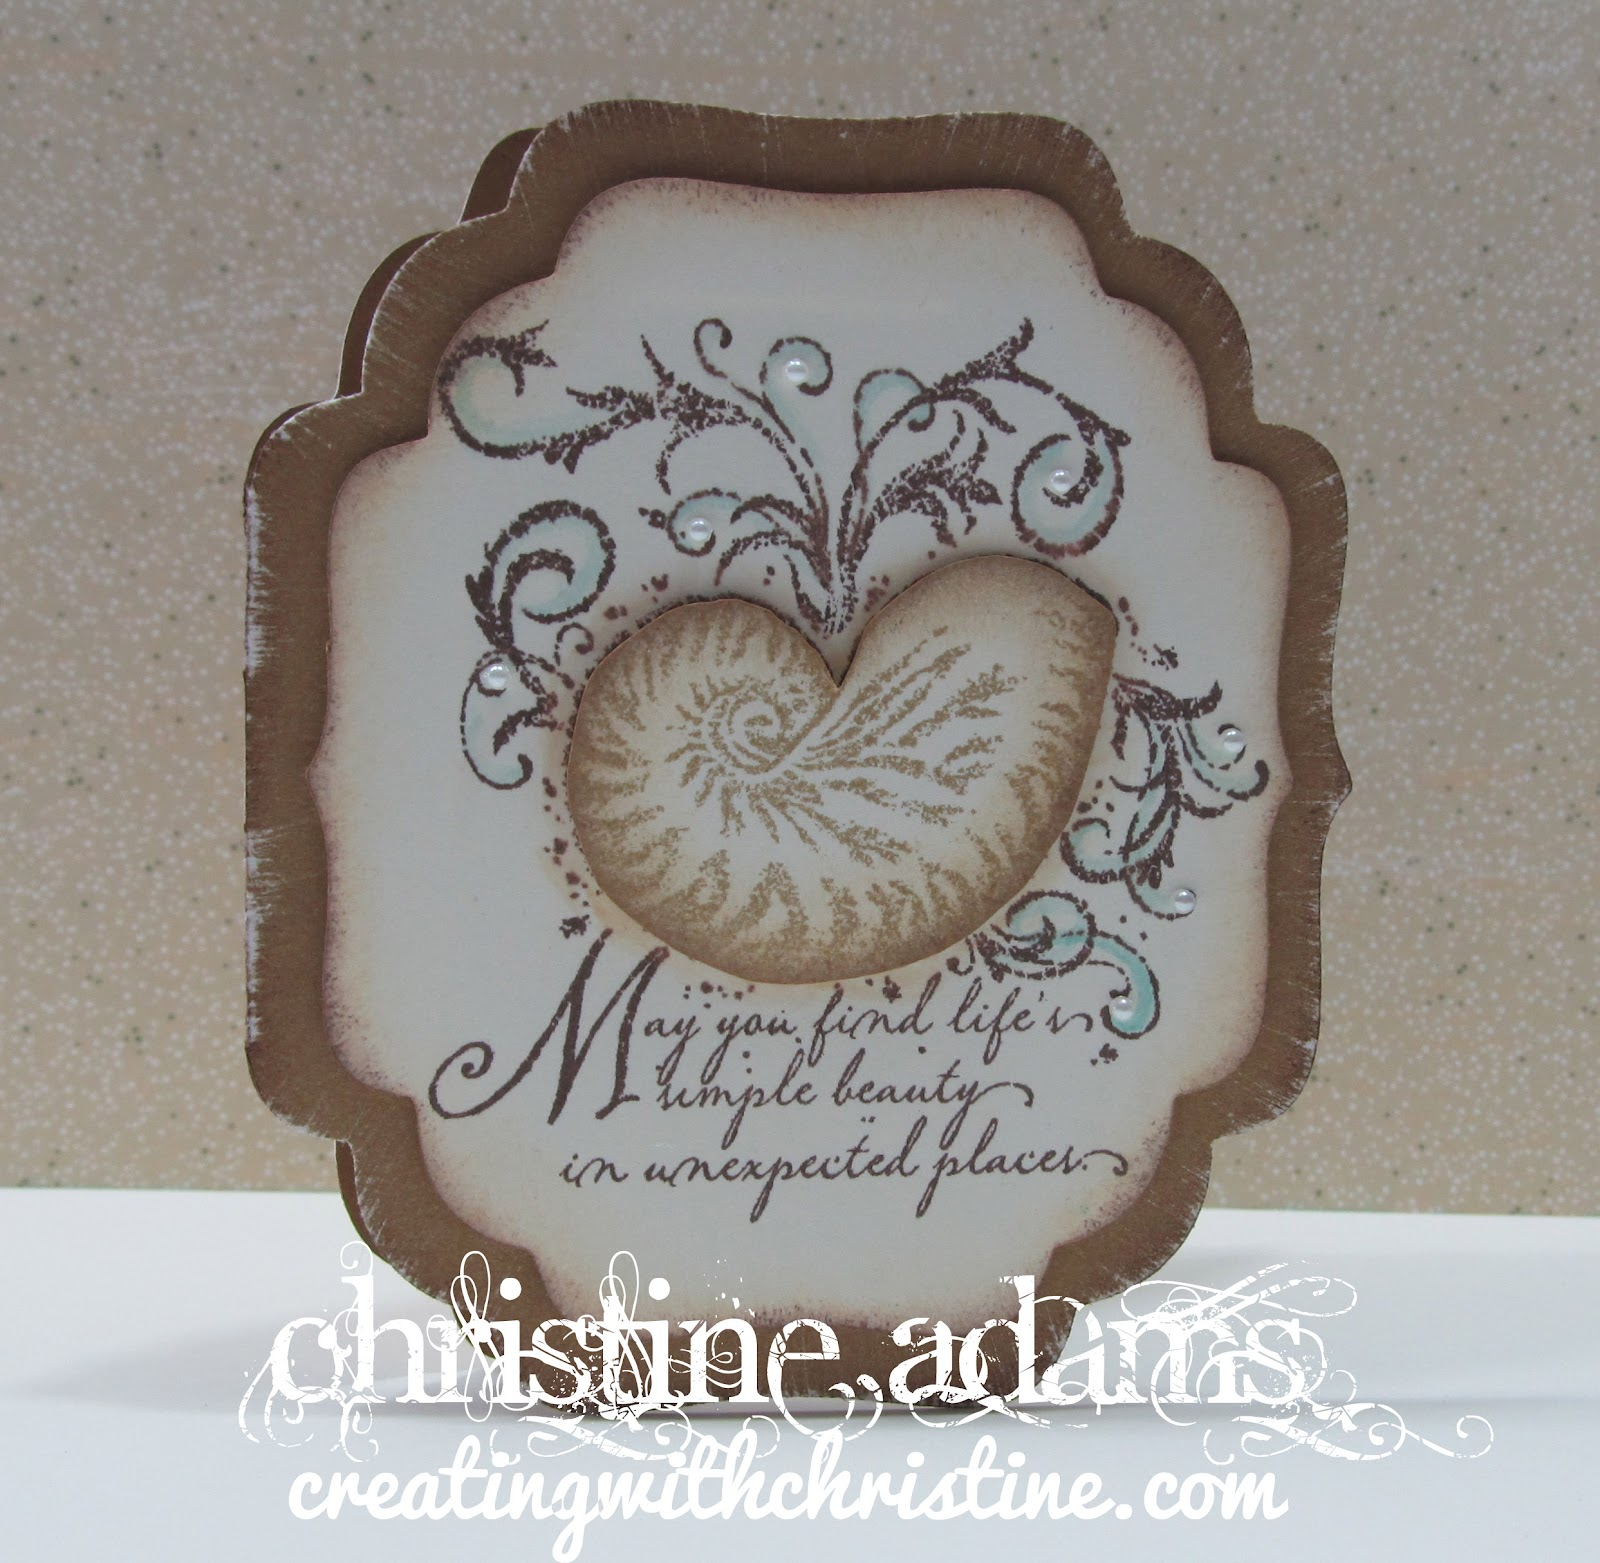 Cricut Sea Shell http://www.creatingwithchristine.com/2012/02/cricut-and-quick-cards-shell.html